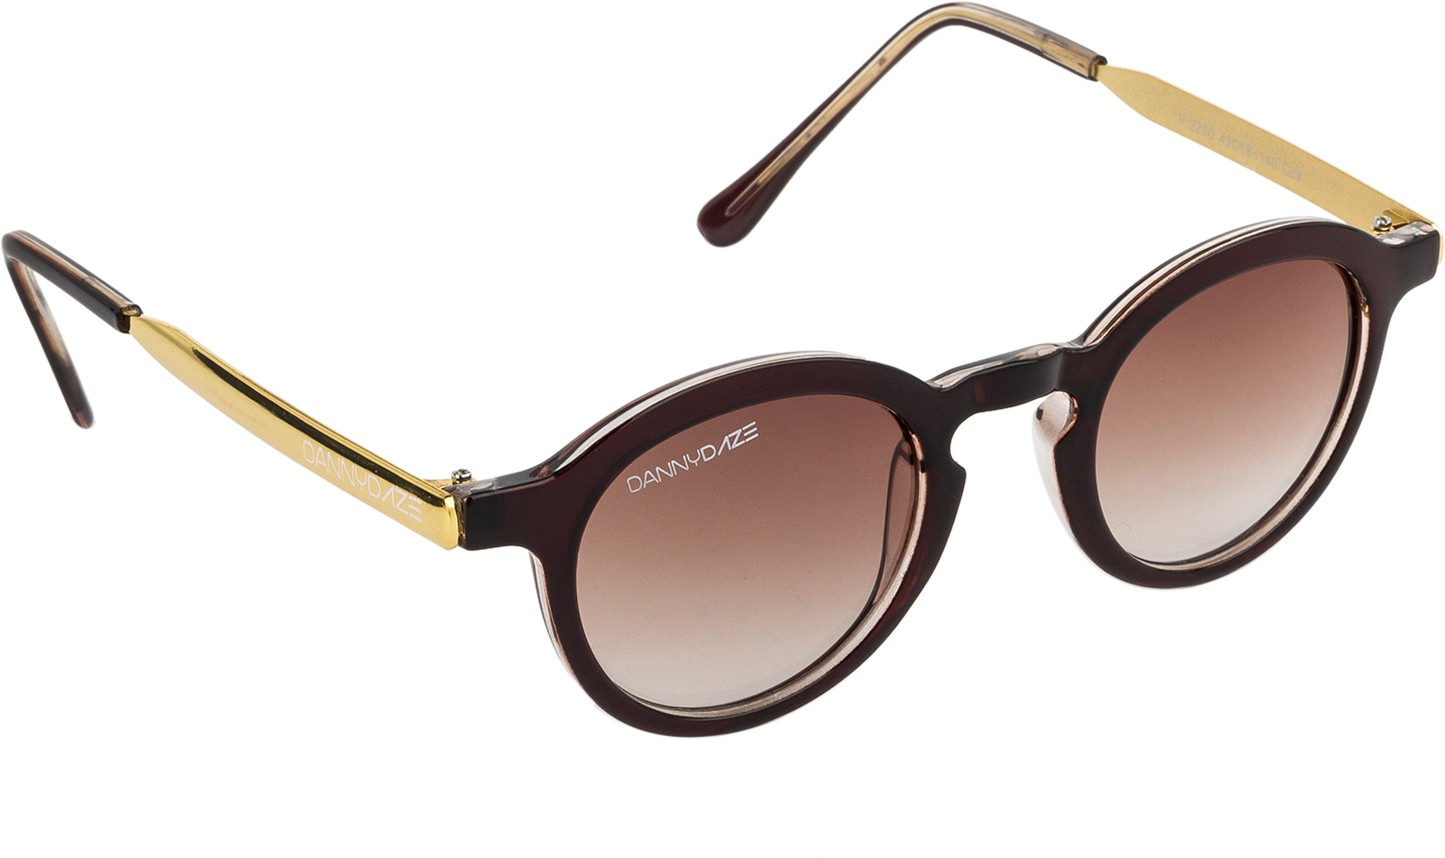 Deals - Delhi - Must - have <br> Womens Sunglasses<br> Category - sunglasses<br> Business - Flipkart.com